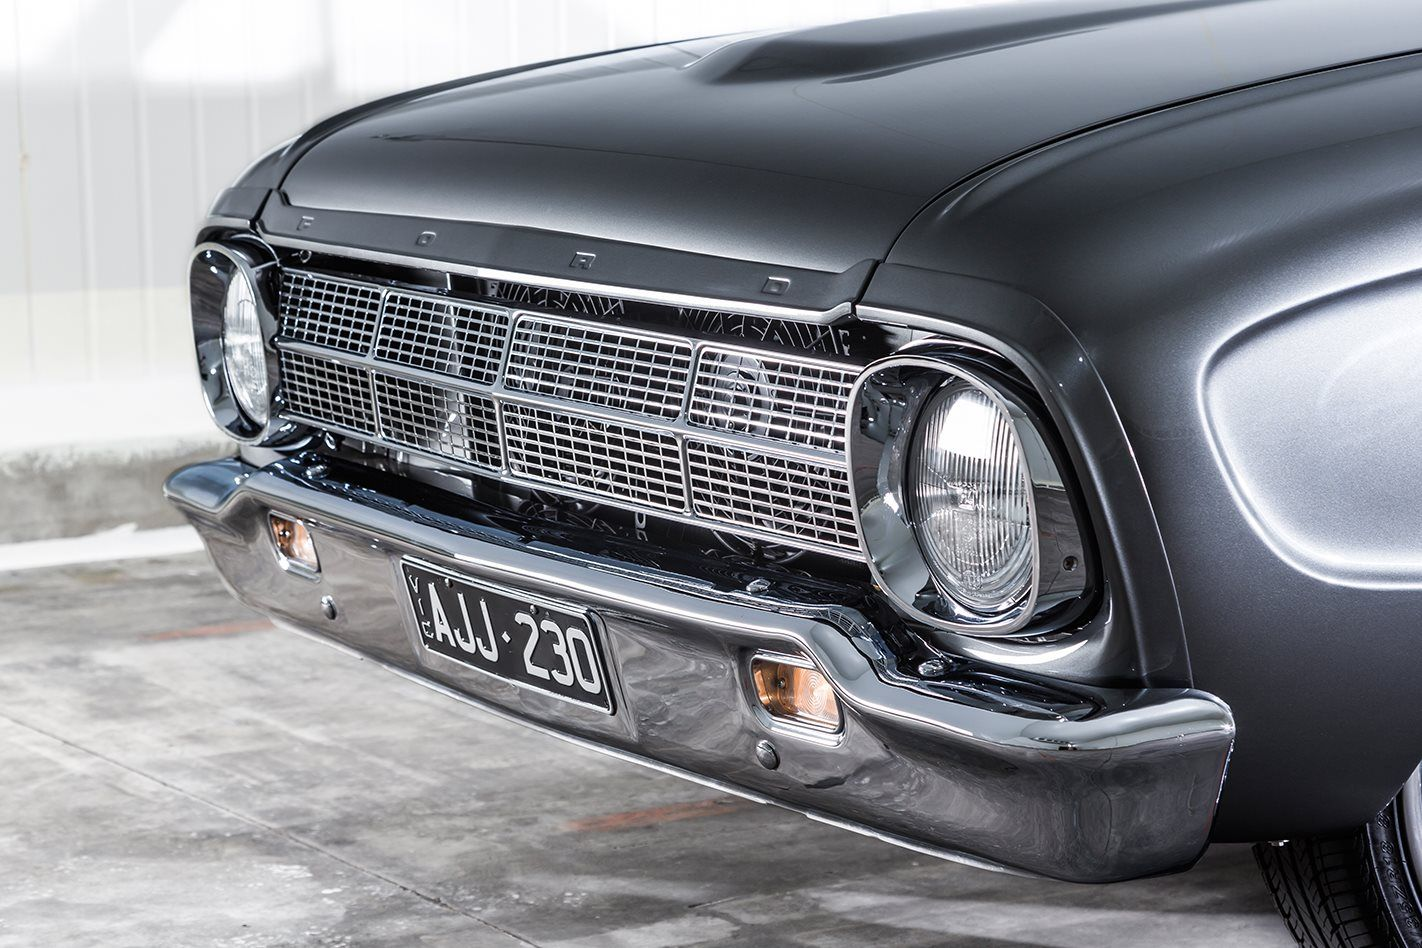 Ford Falcon Xm Coupe Front Grille Ford Falcon 1964 Ford 1964 Ford Falcon